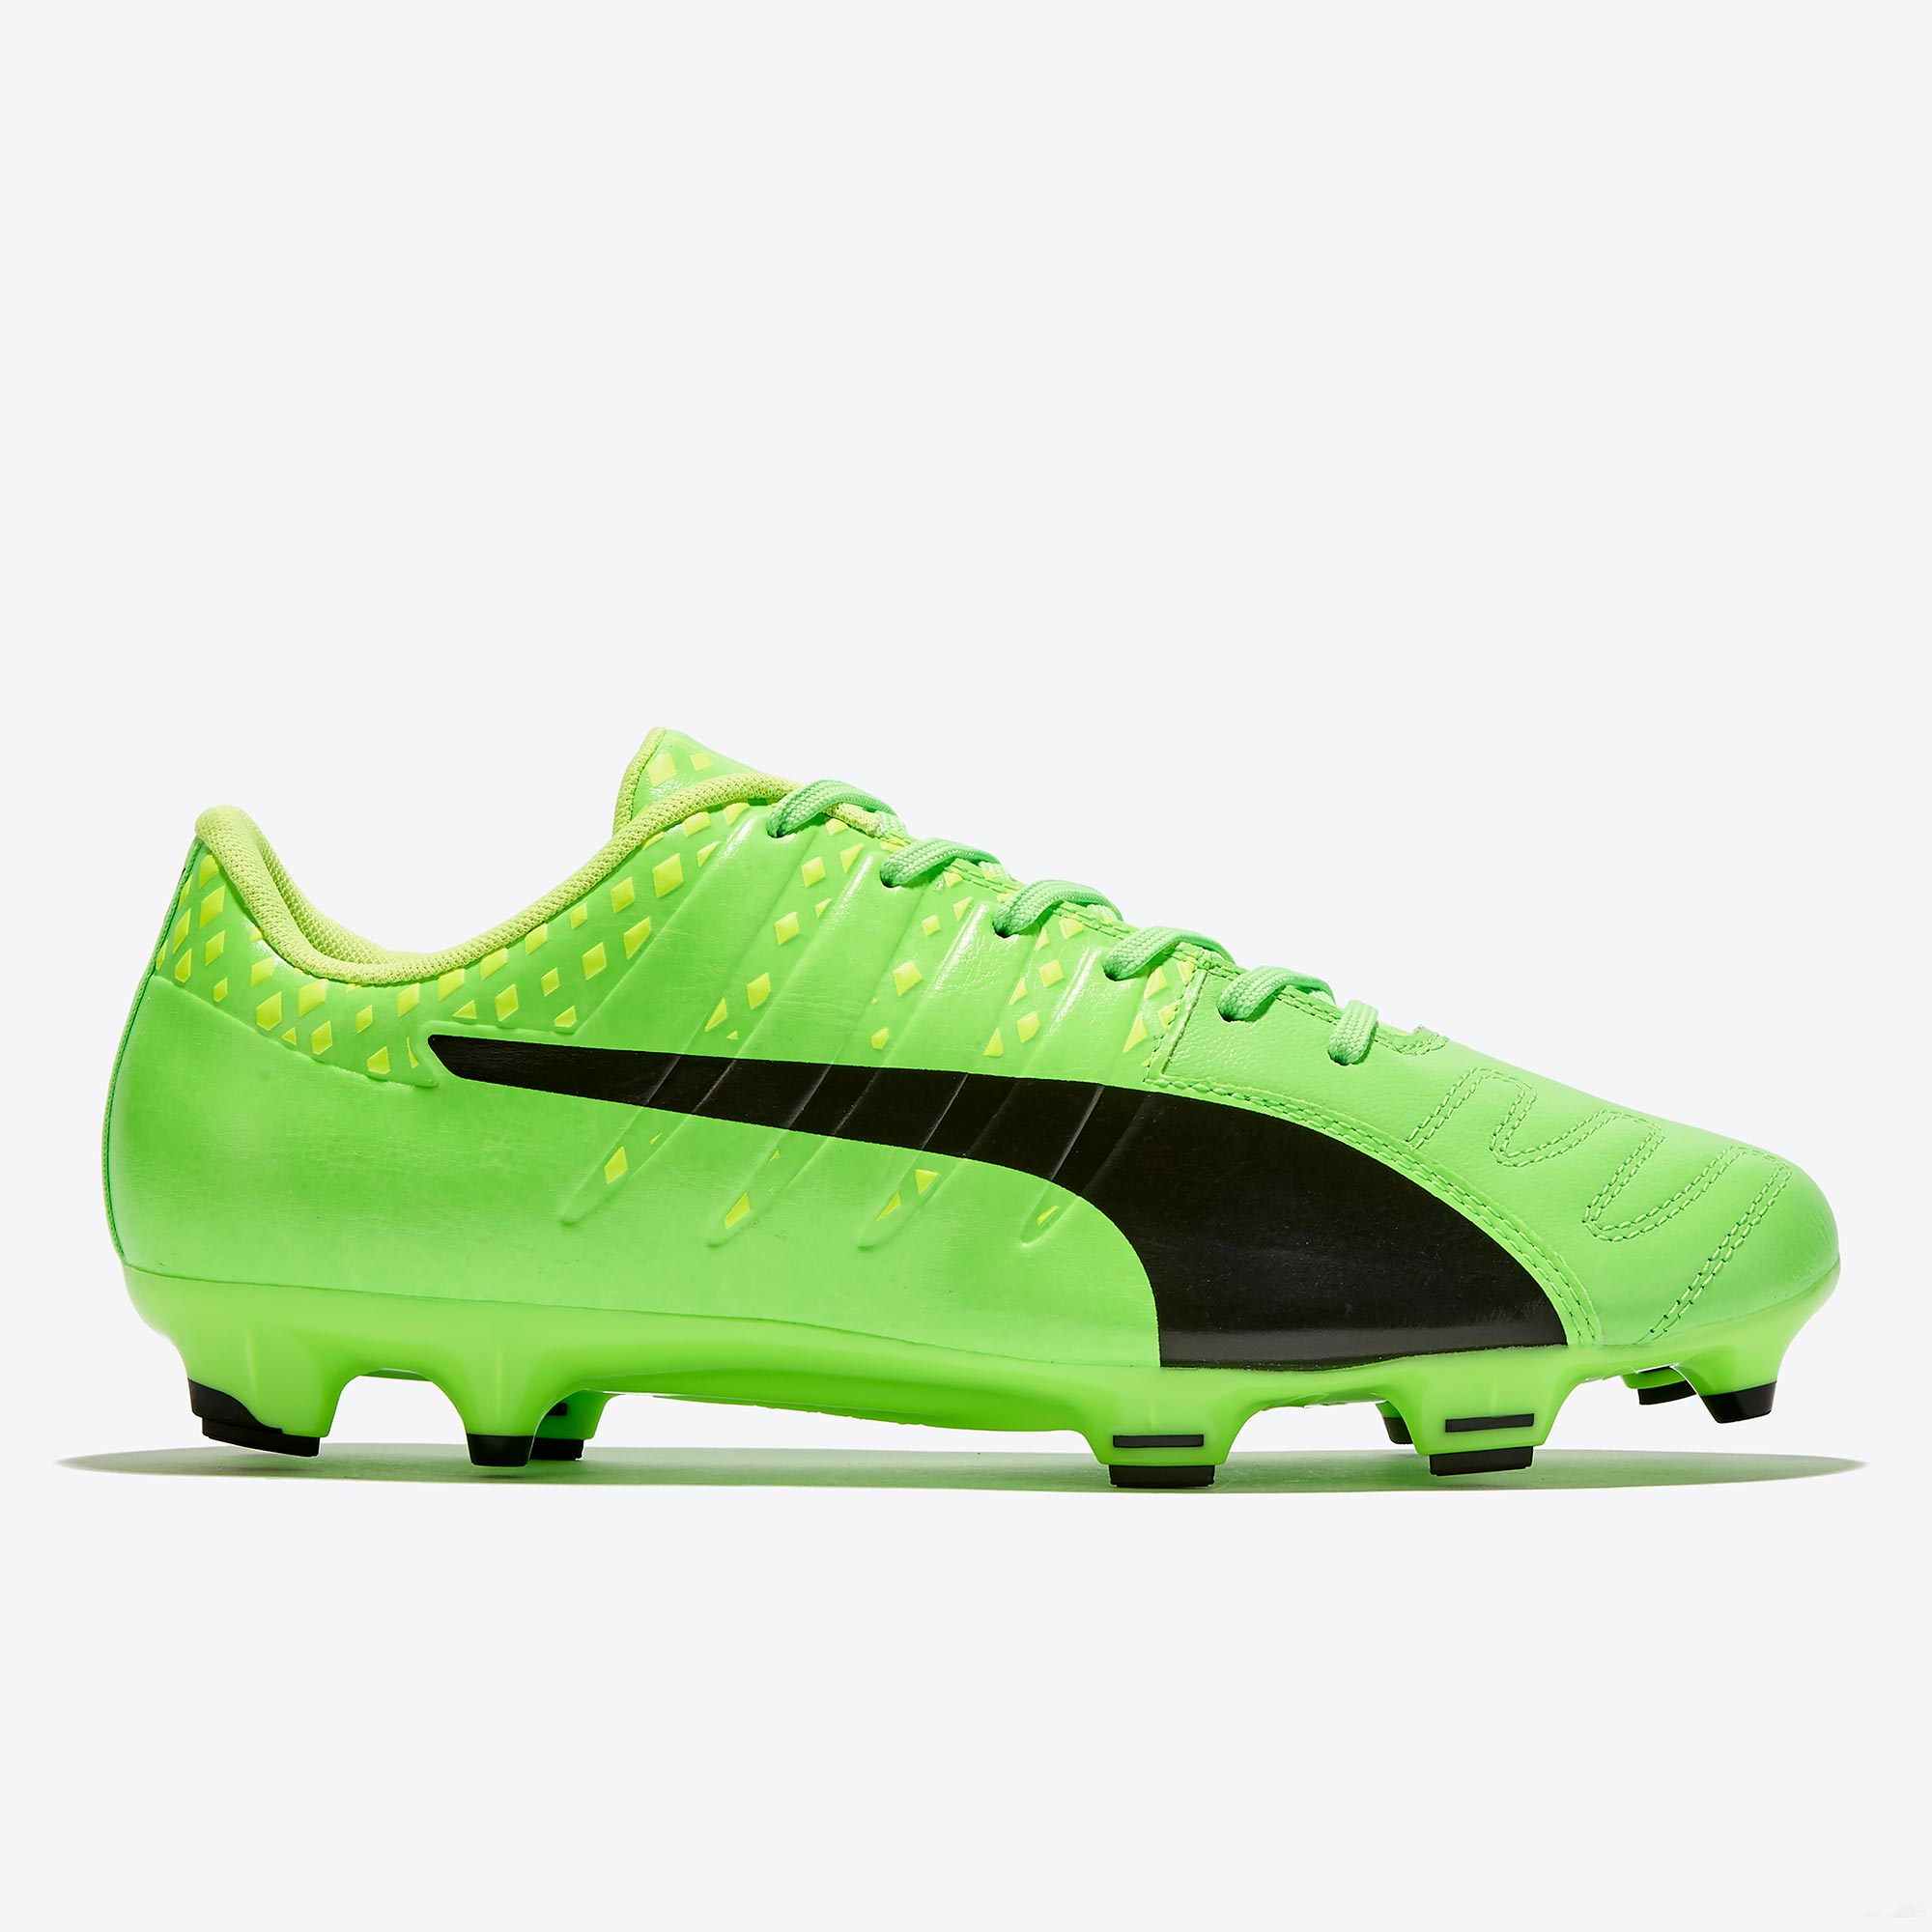 Puma evoPOWER Vigor 3 Leather FG Green Gecko